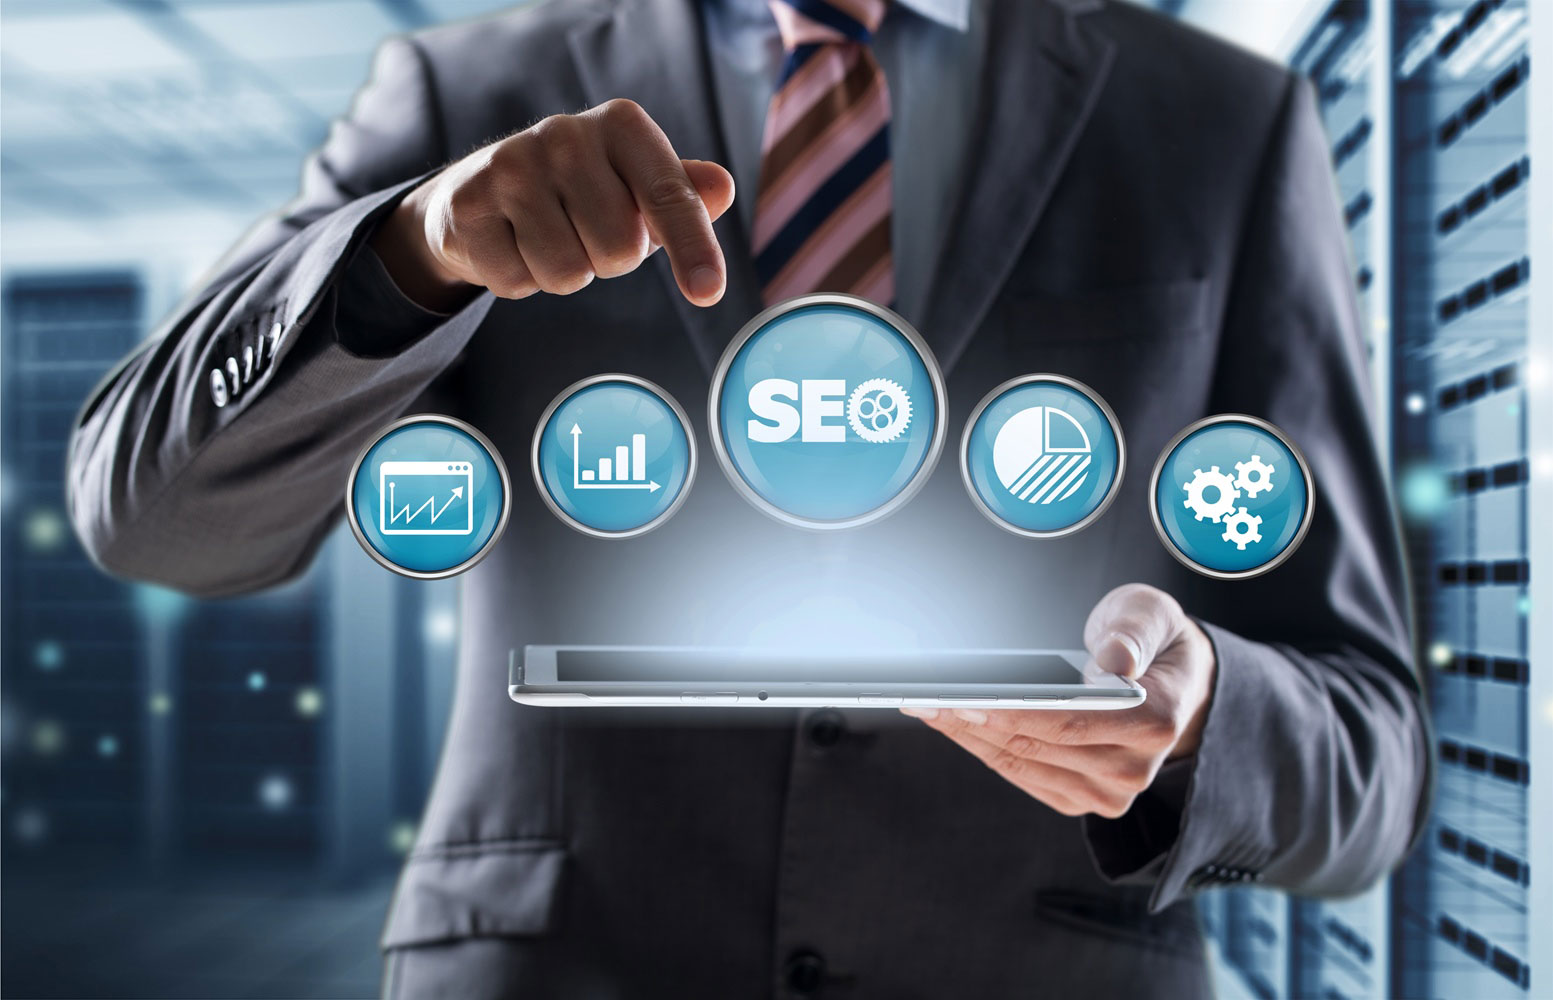 Incredible SEO Ideas That Will Help Jumpstart Your Site Traffic